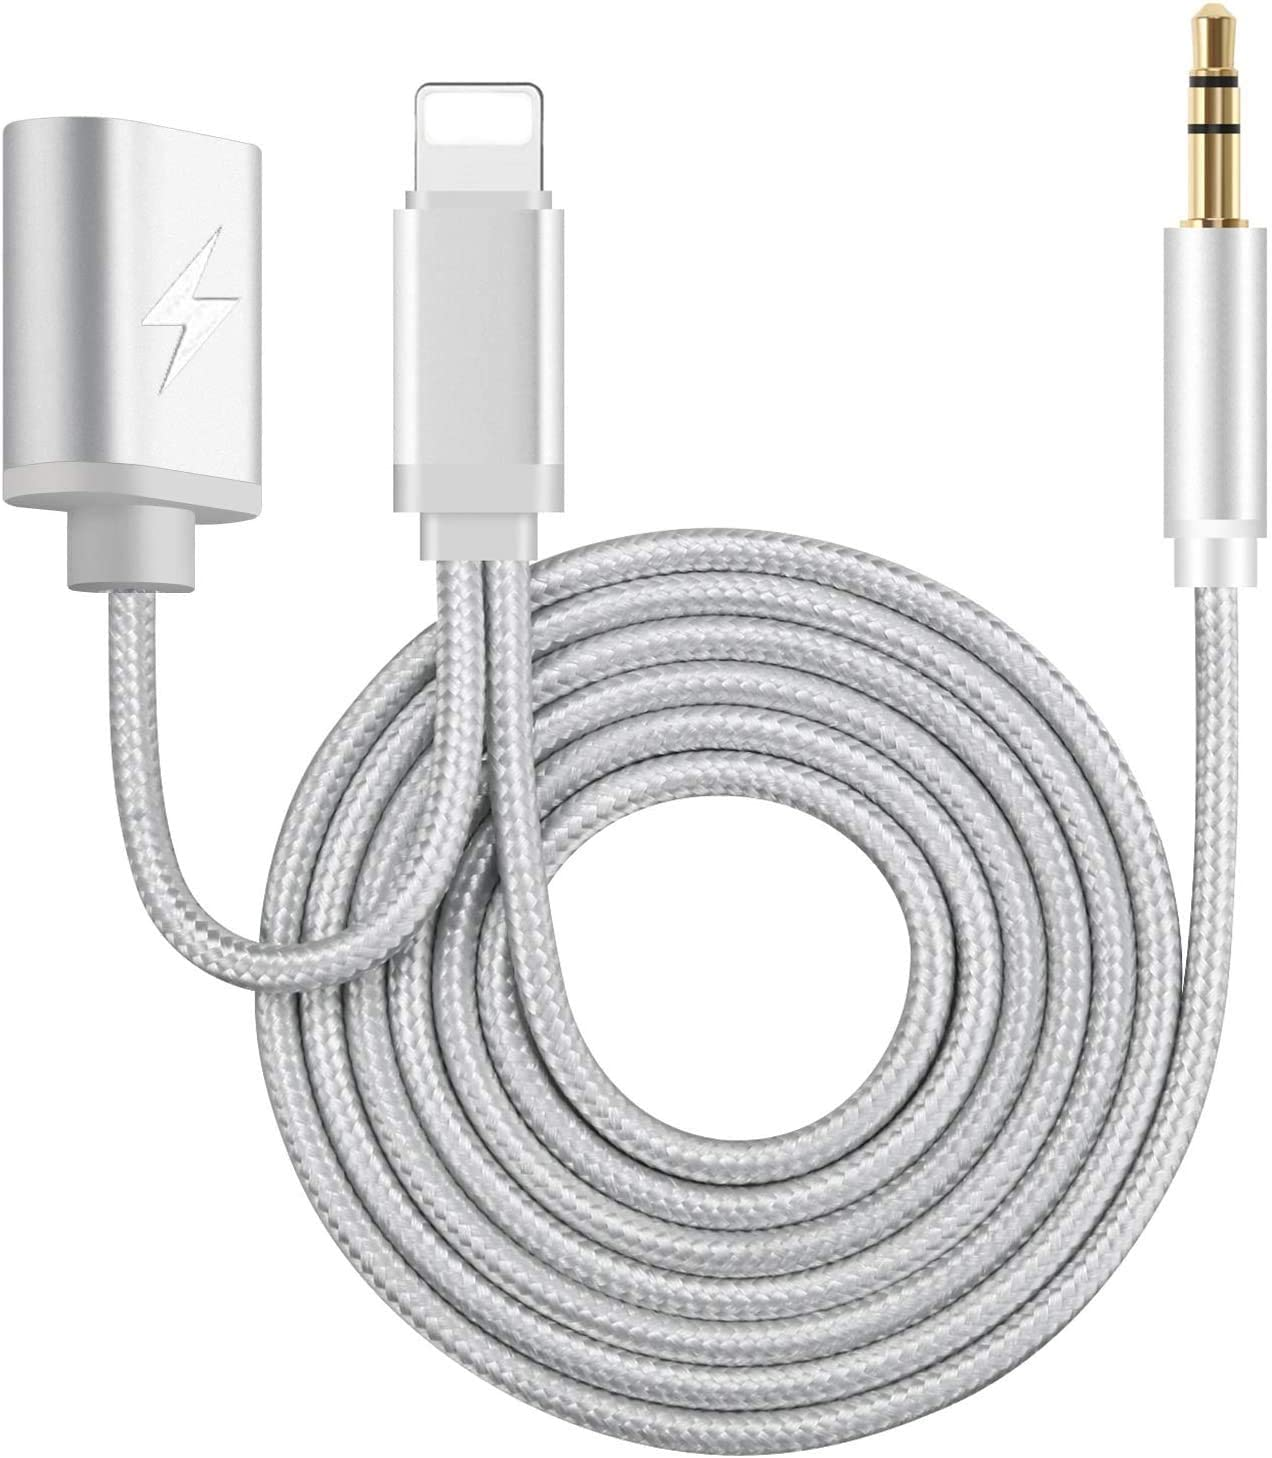 Aux and Charger Cable 2 in 1 Nylon Braided 3.5mm Headphone Jack Adapter and Extend Female Charger Cord Compatible with iPhone 11/11 Pro/X/XS/XR/XS MAX/8/8P/7/7P/iPad/iPod for Car/Home stereos(Silver)